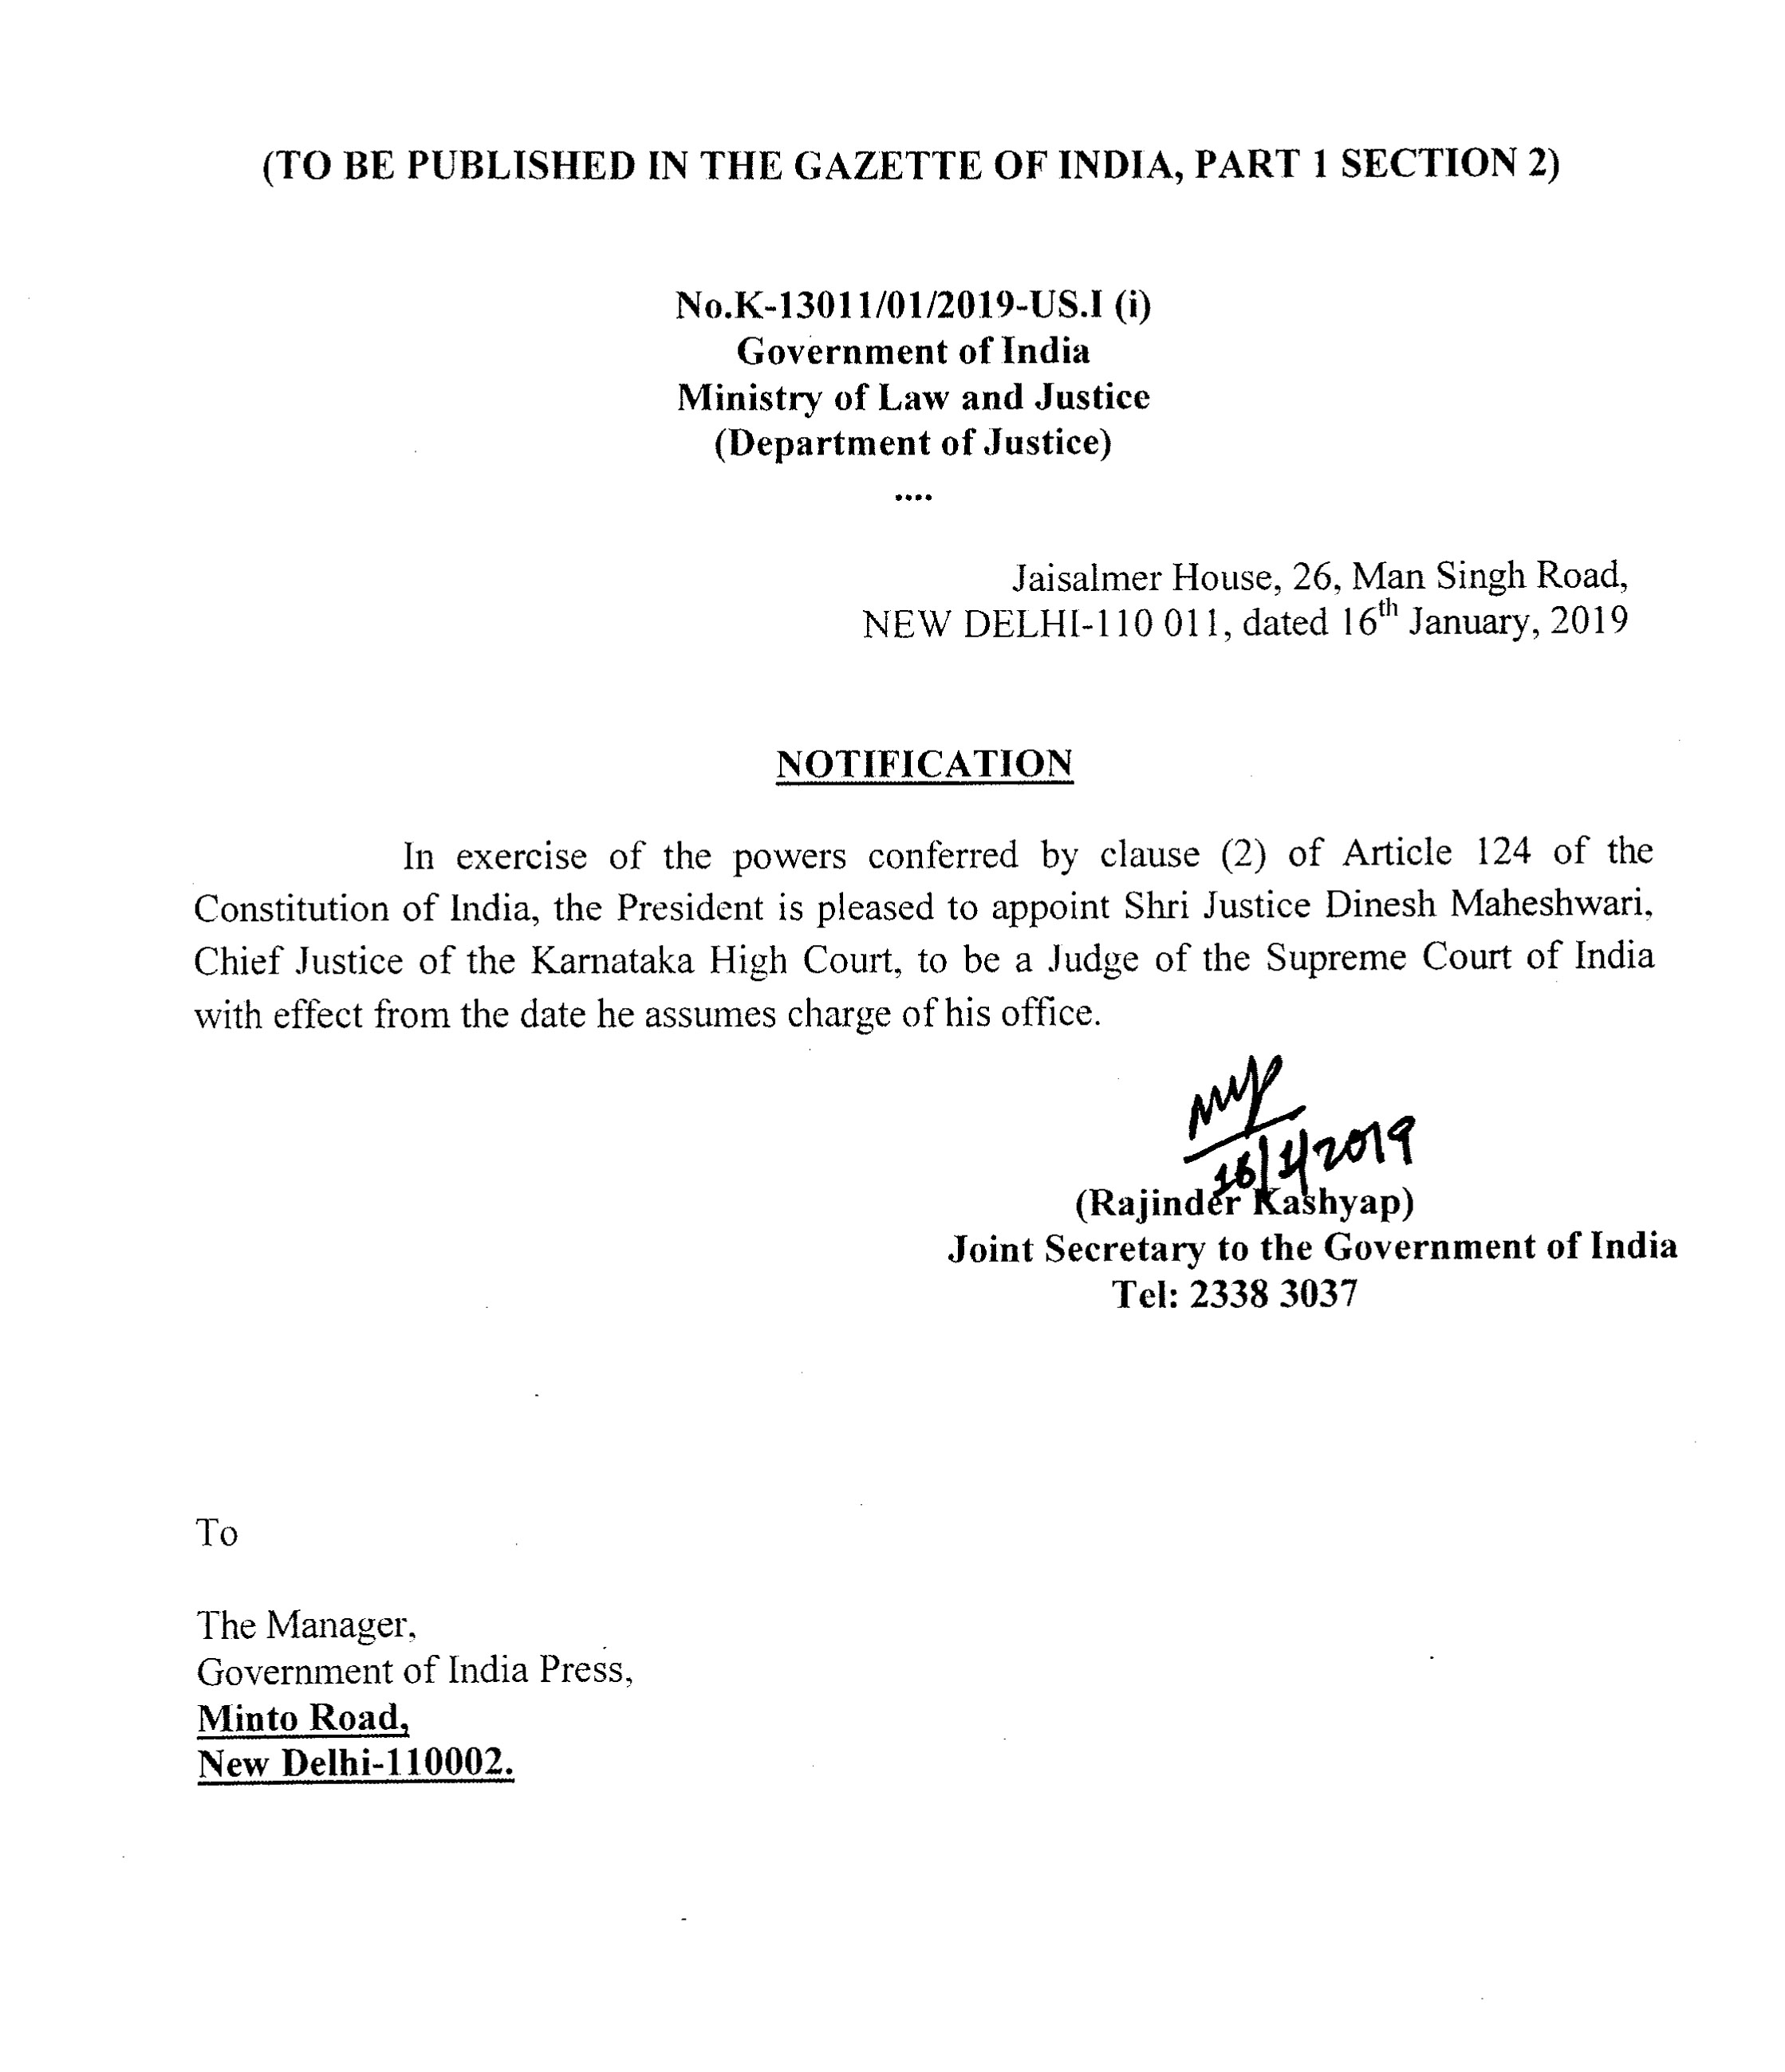 Justices Dinesh Maheshwari and Sanjiv Khanna appointed as SC judges